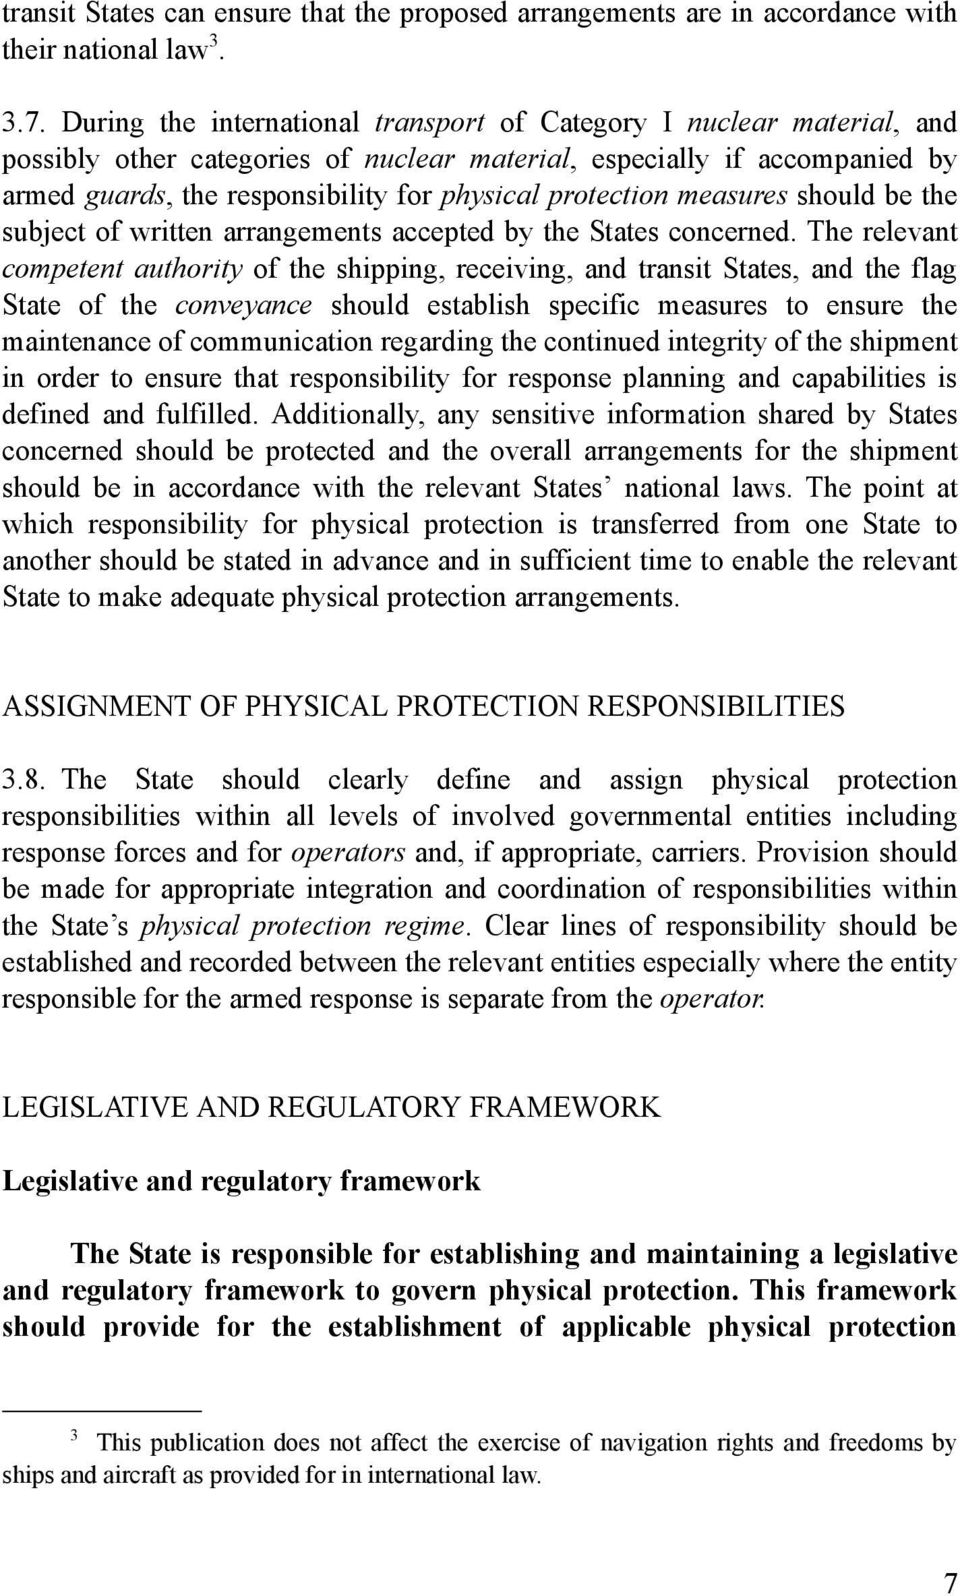 protection measures should be the subject of written arrangements accepted by the States concerned.